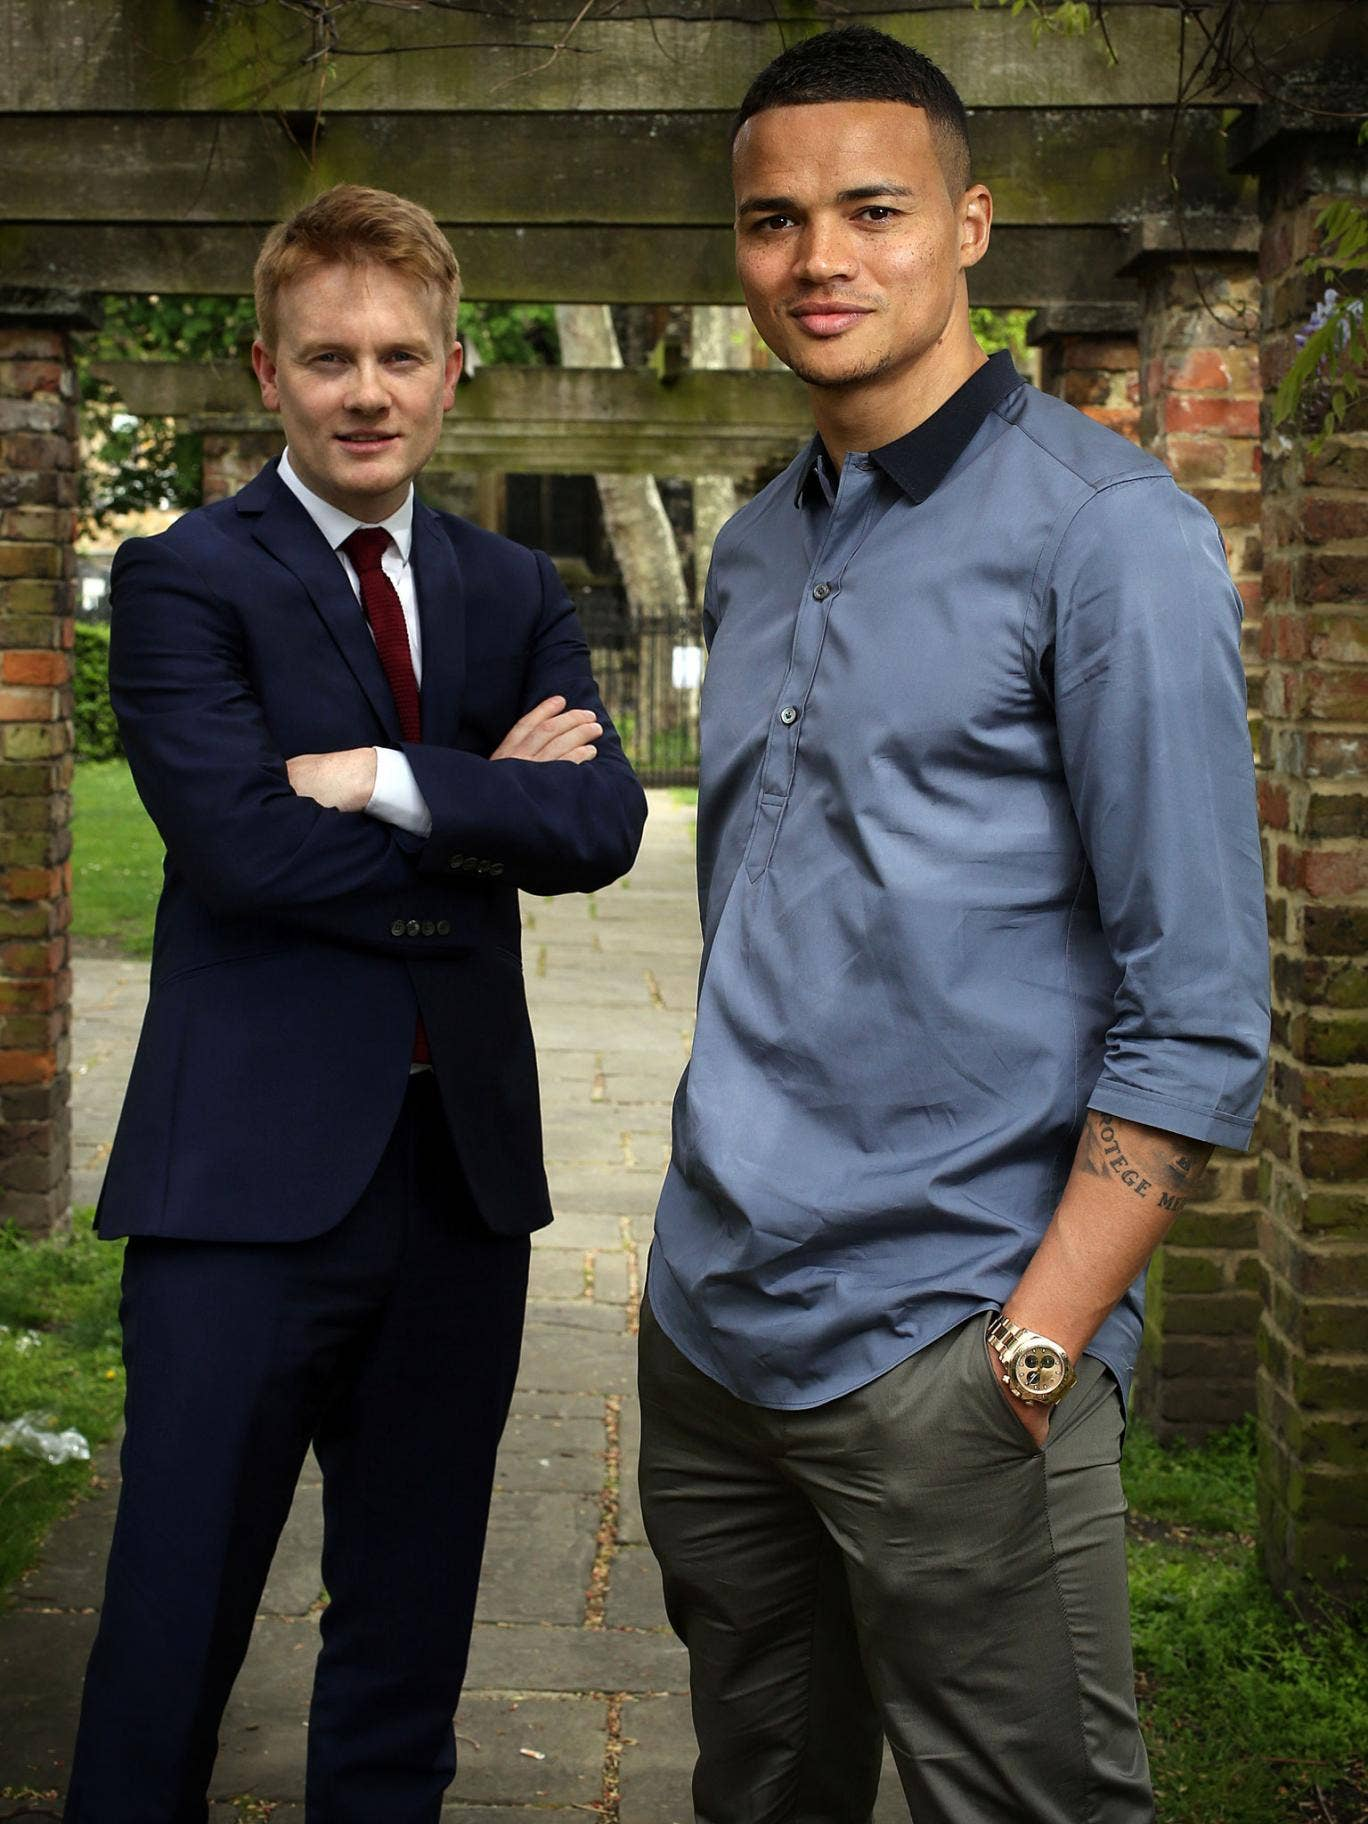 Jermaine Jenas, right, with Craig Anderson, left, is encouraging children to learn